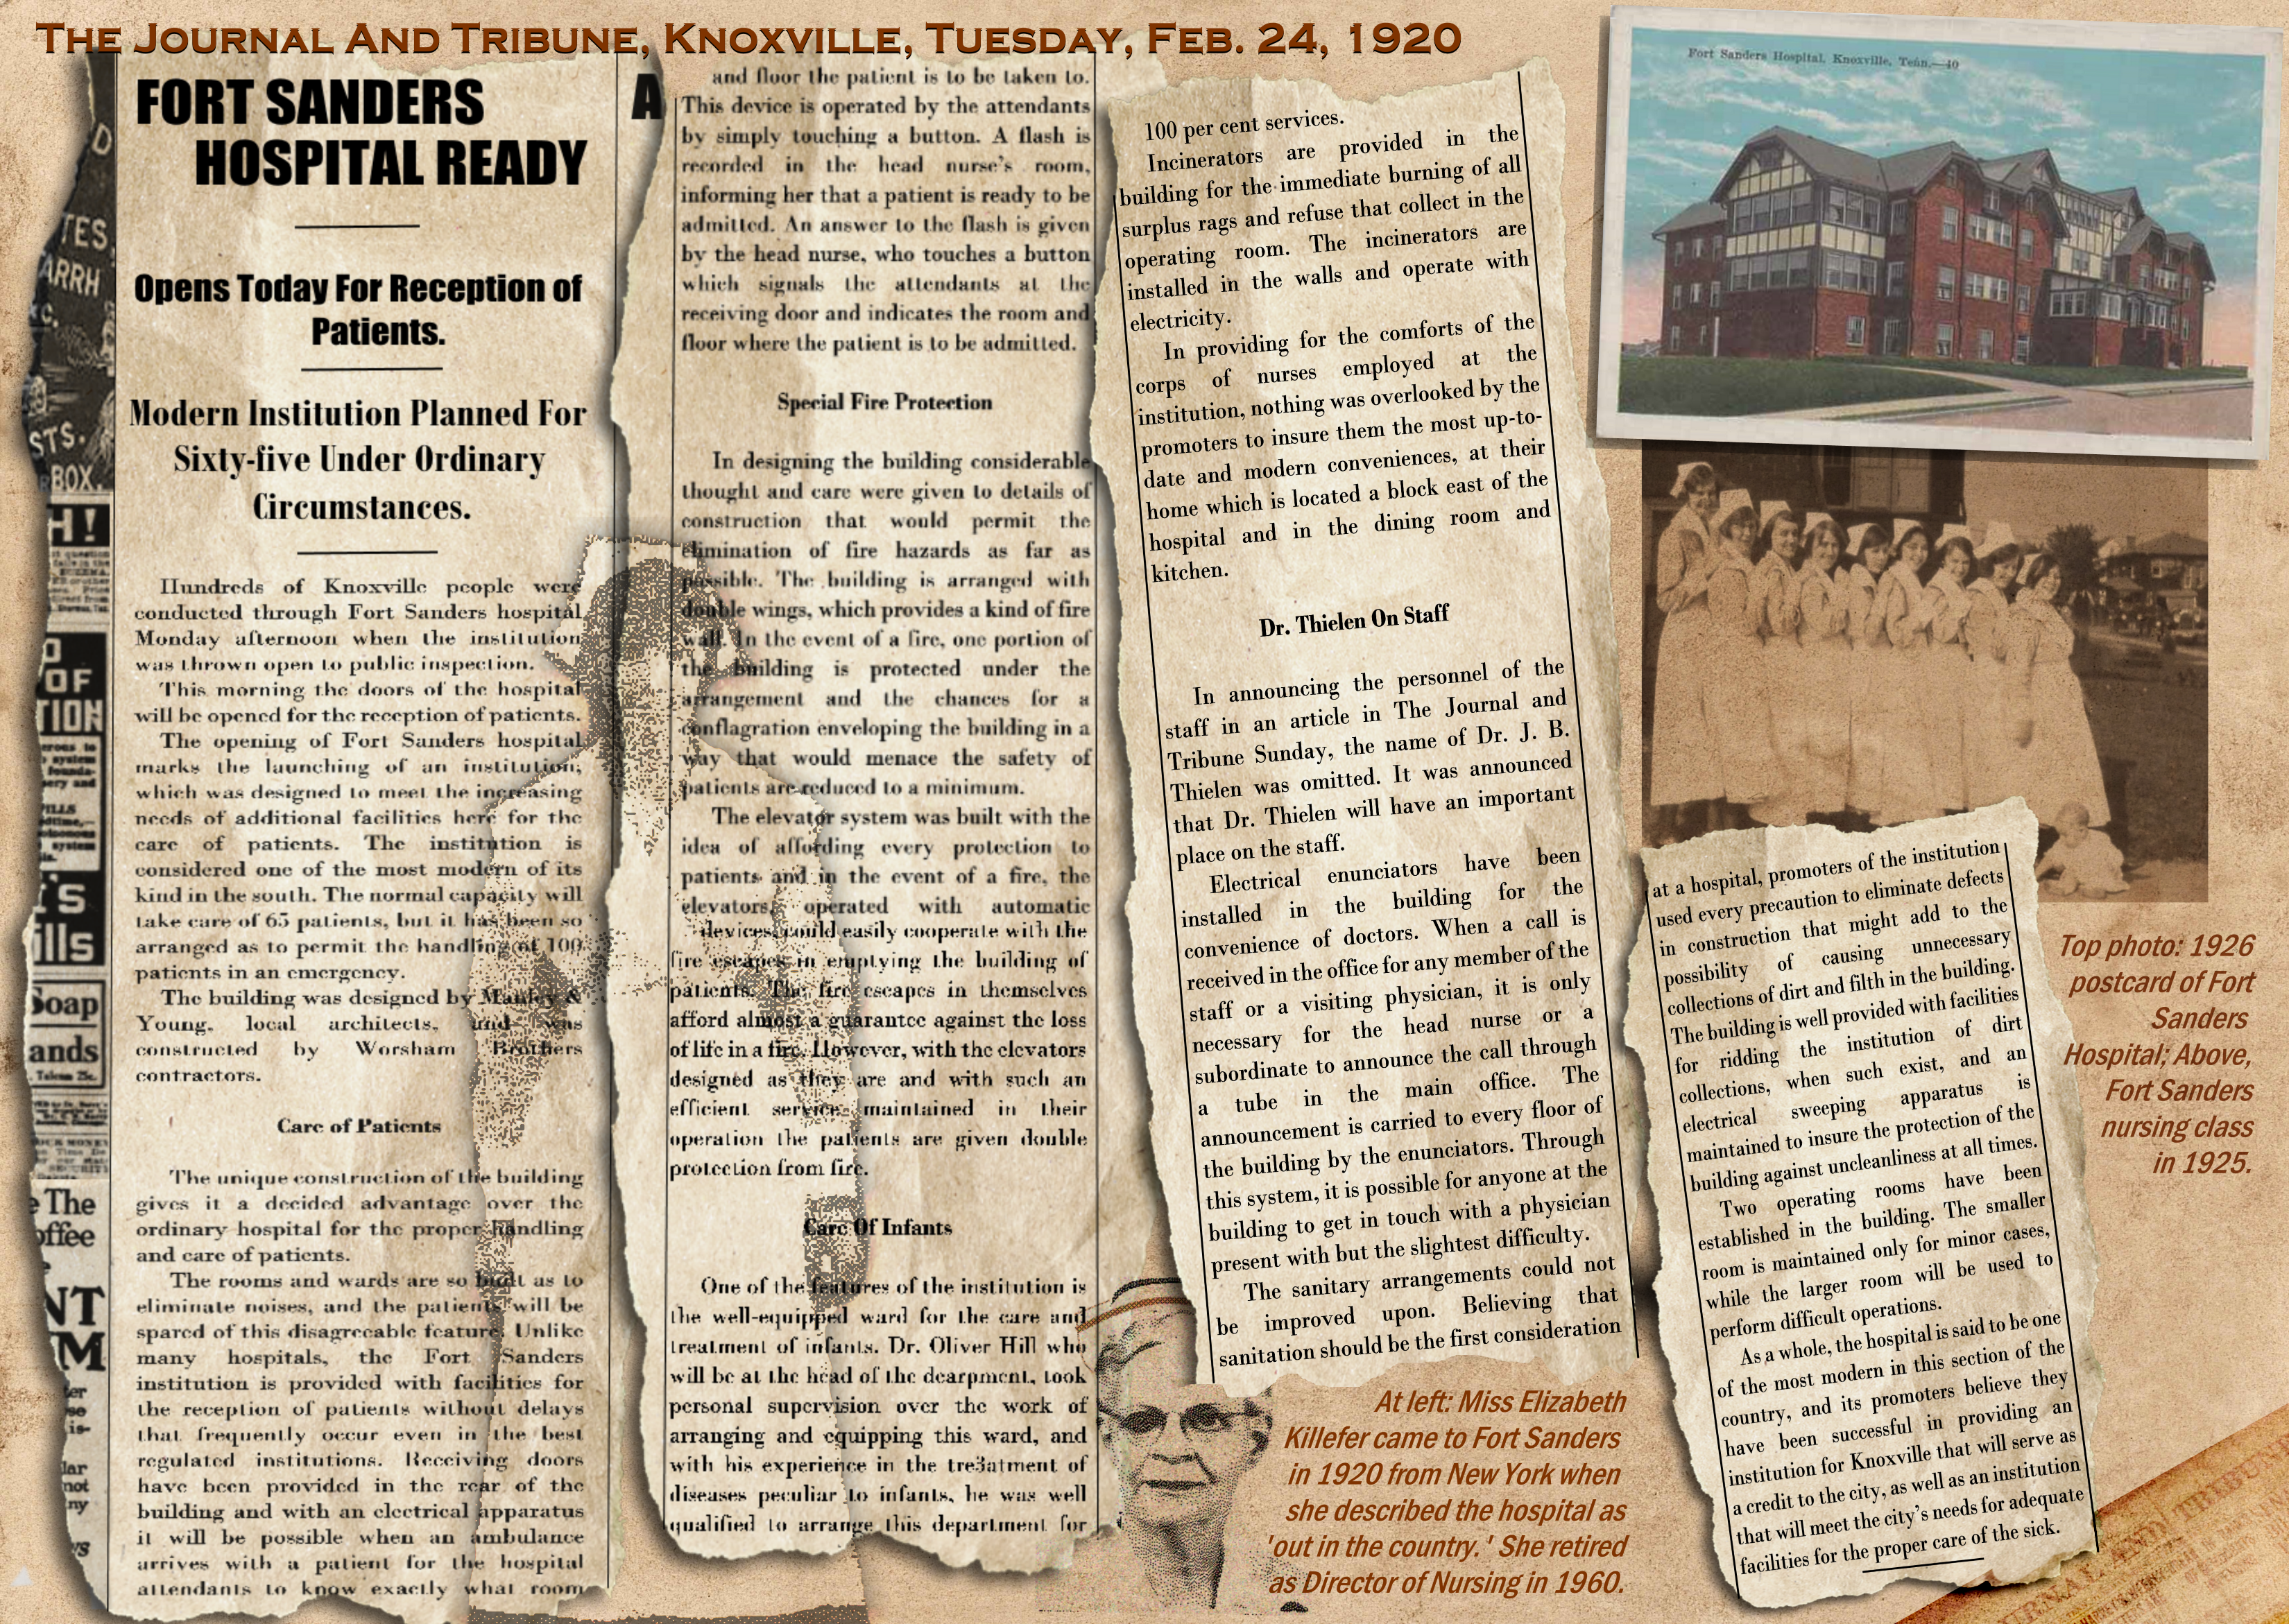 collage of newspaper clippings from the 1920s about Fort Sanders